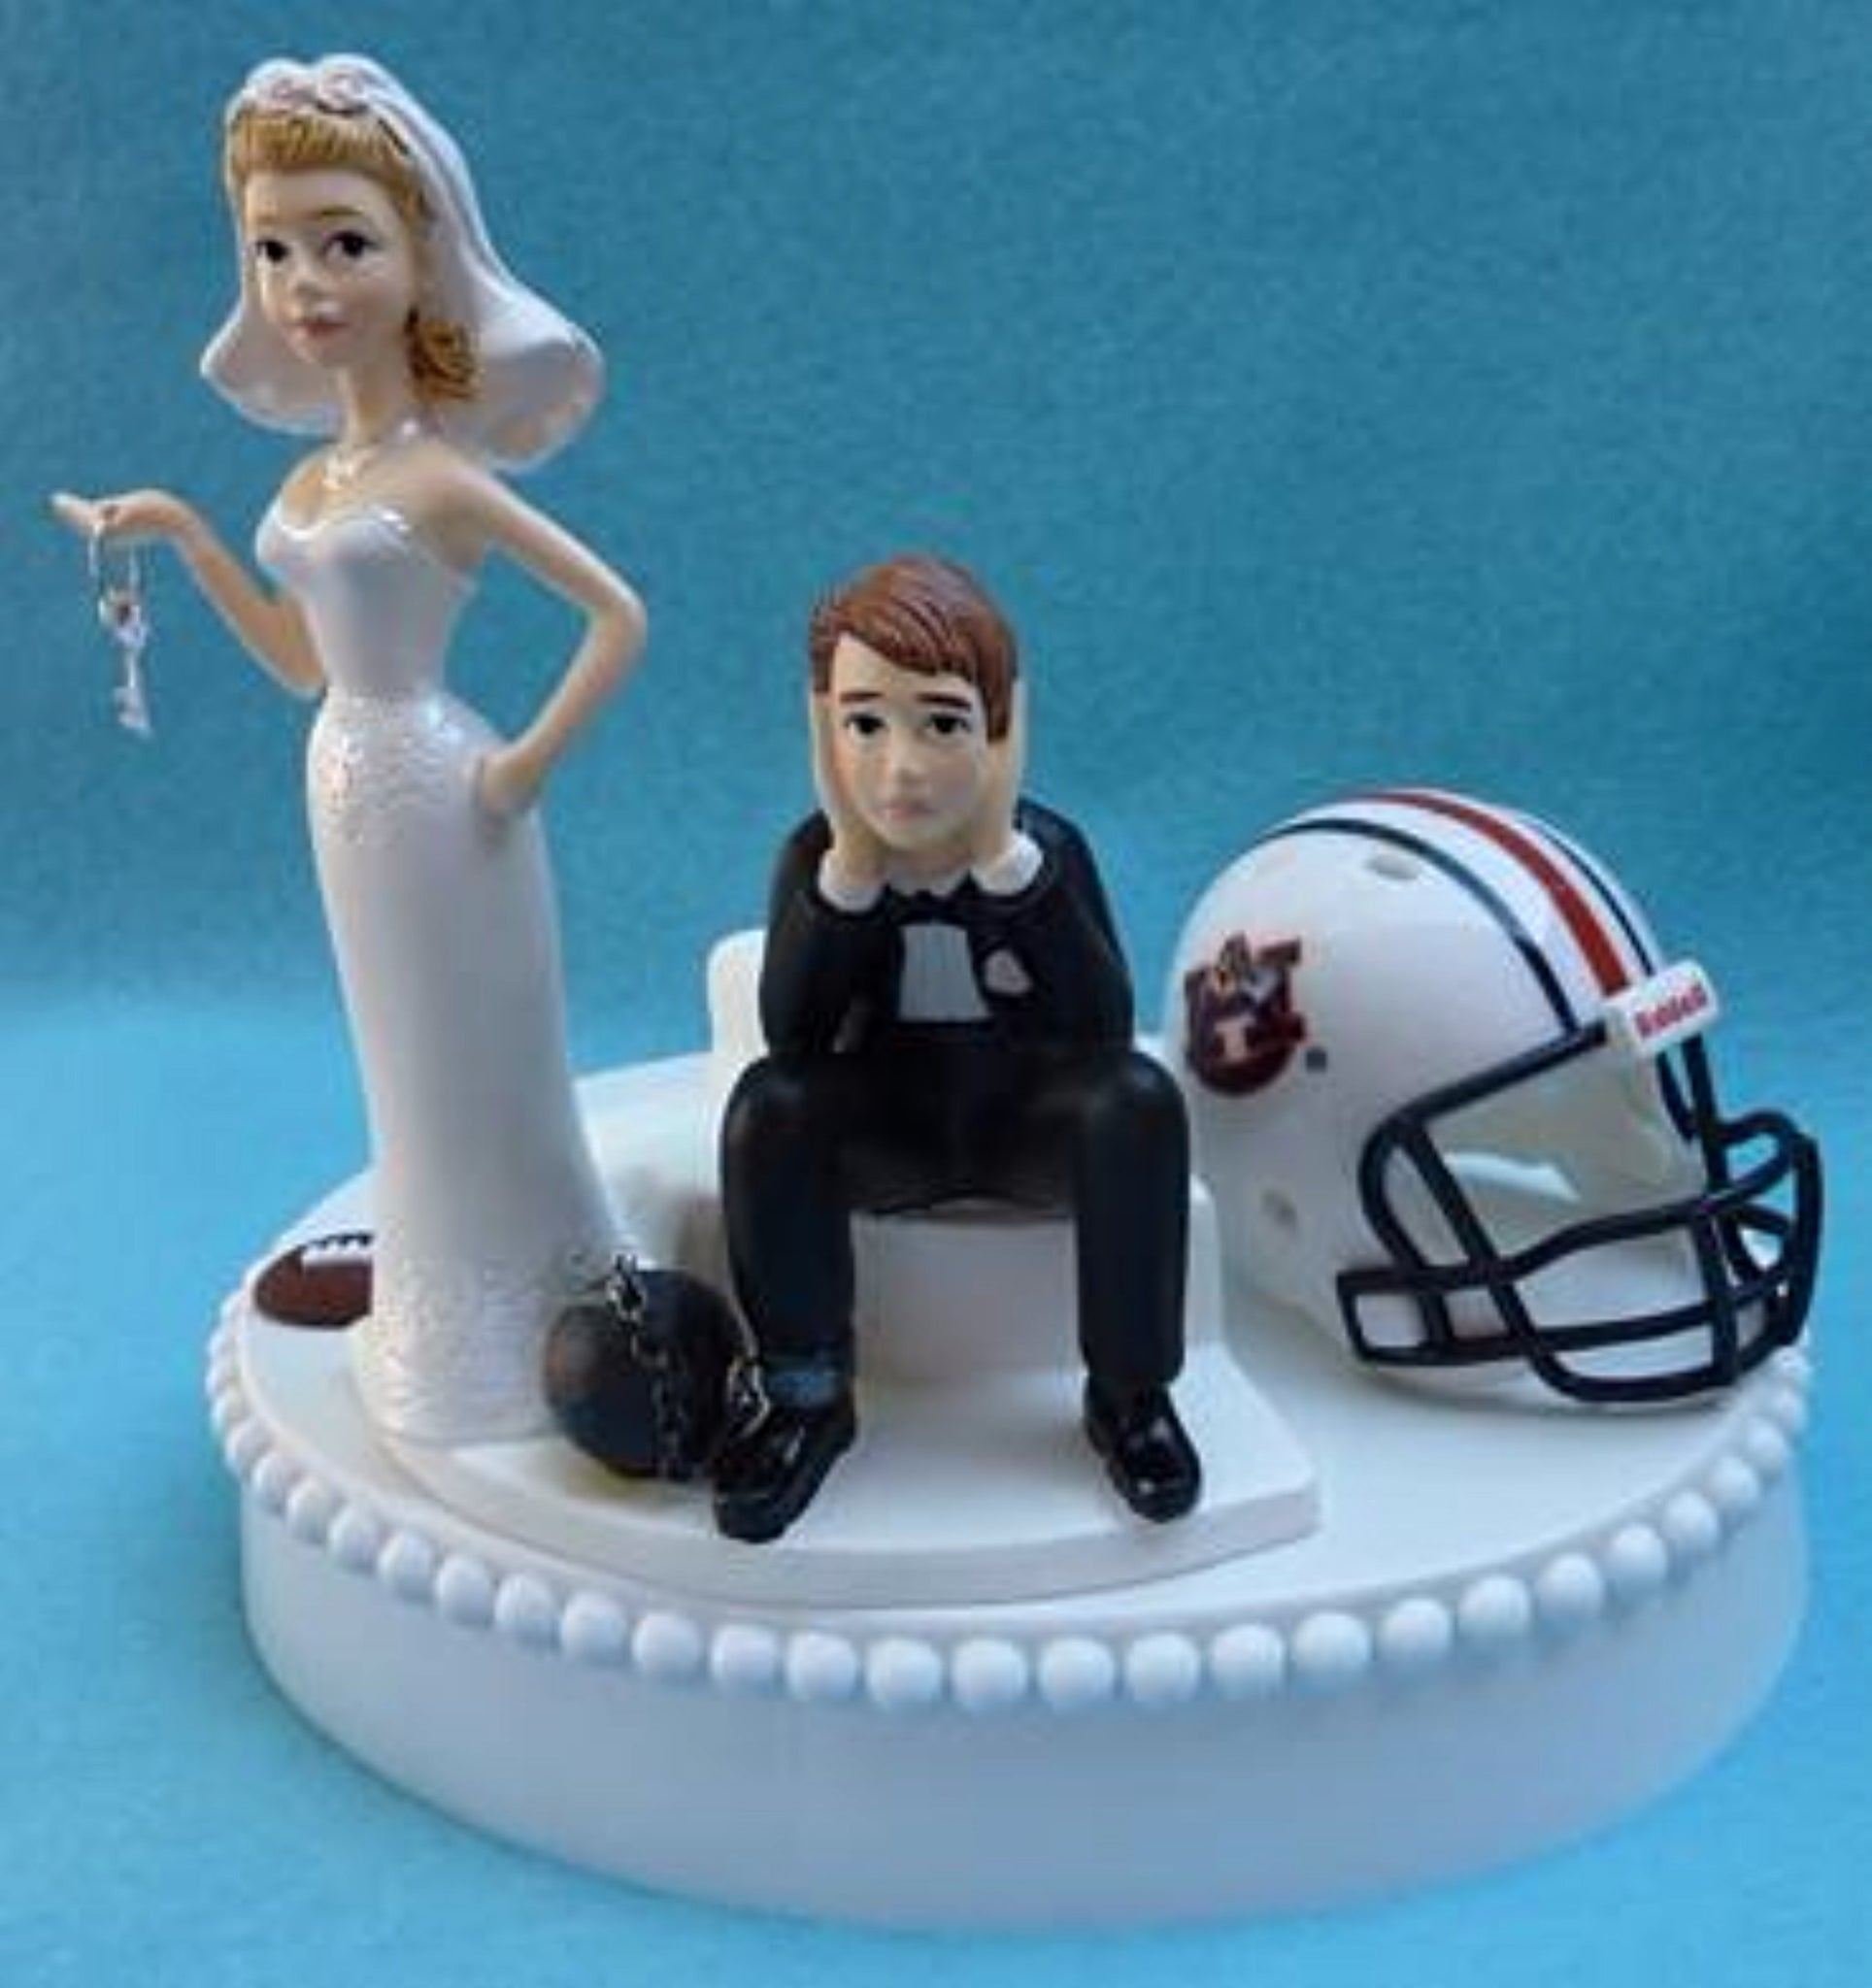 Auburn Tigers wedding cake topper football humorous groom's cake top ball chain helmet bride dejected groom key funny Fun Wedding Things